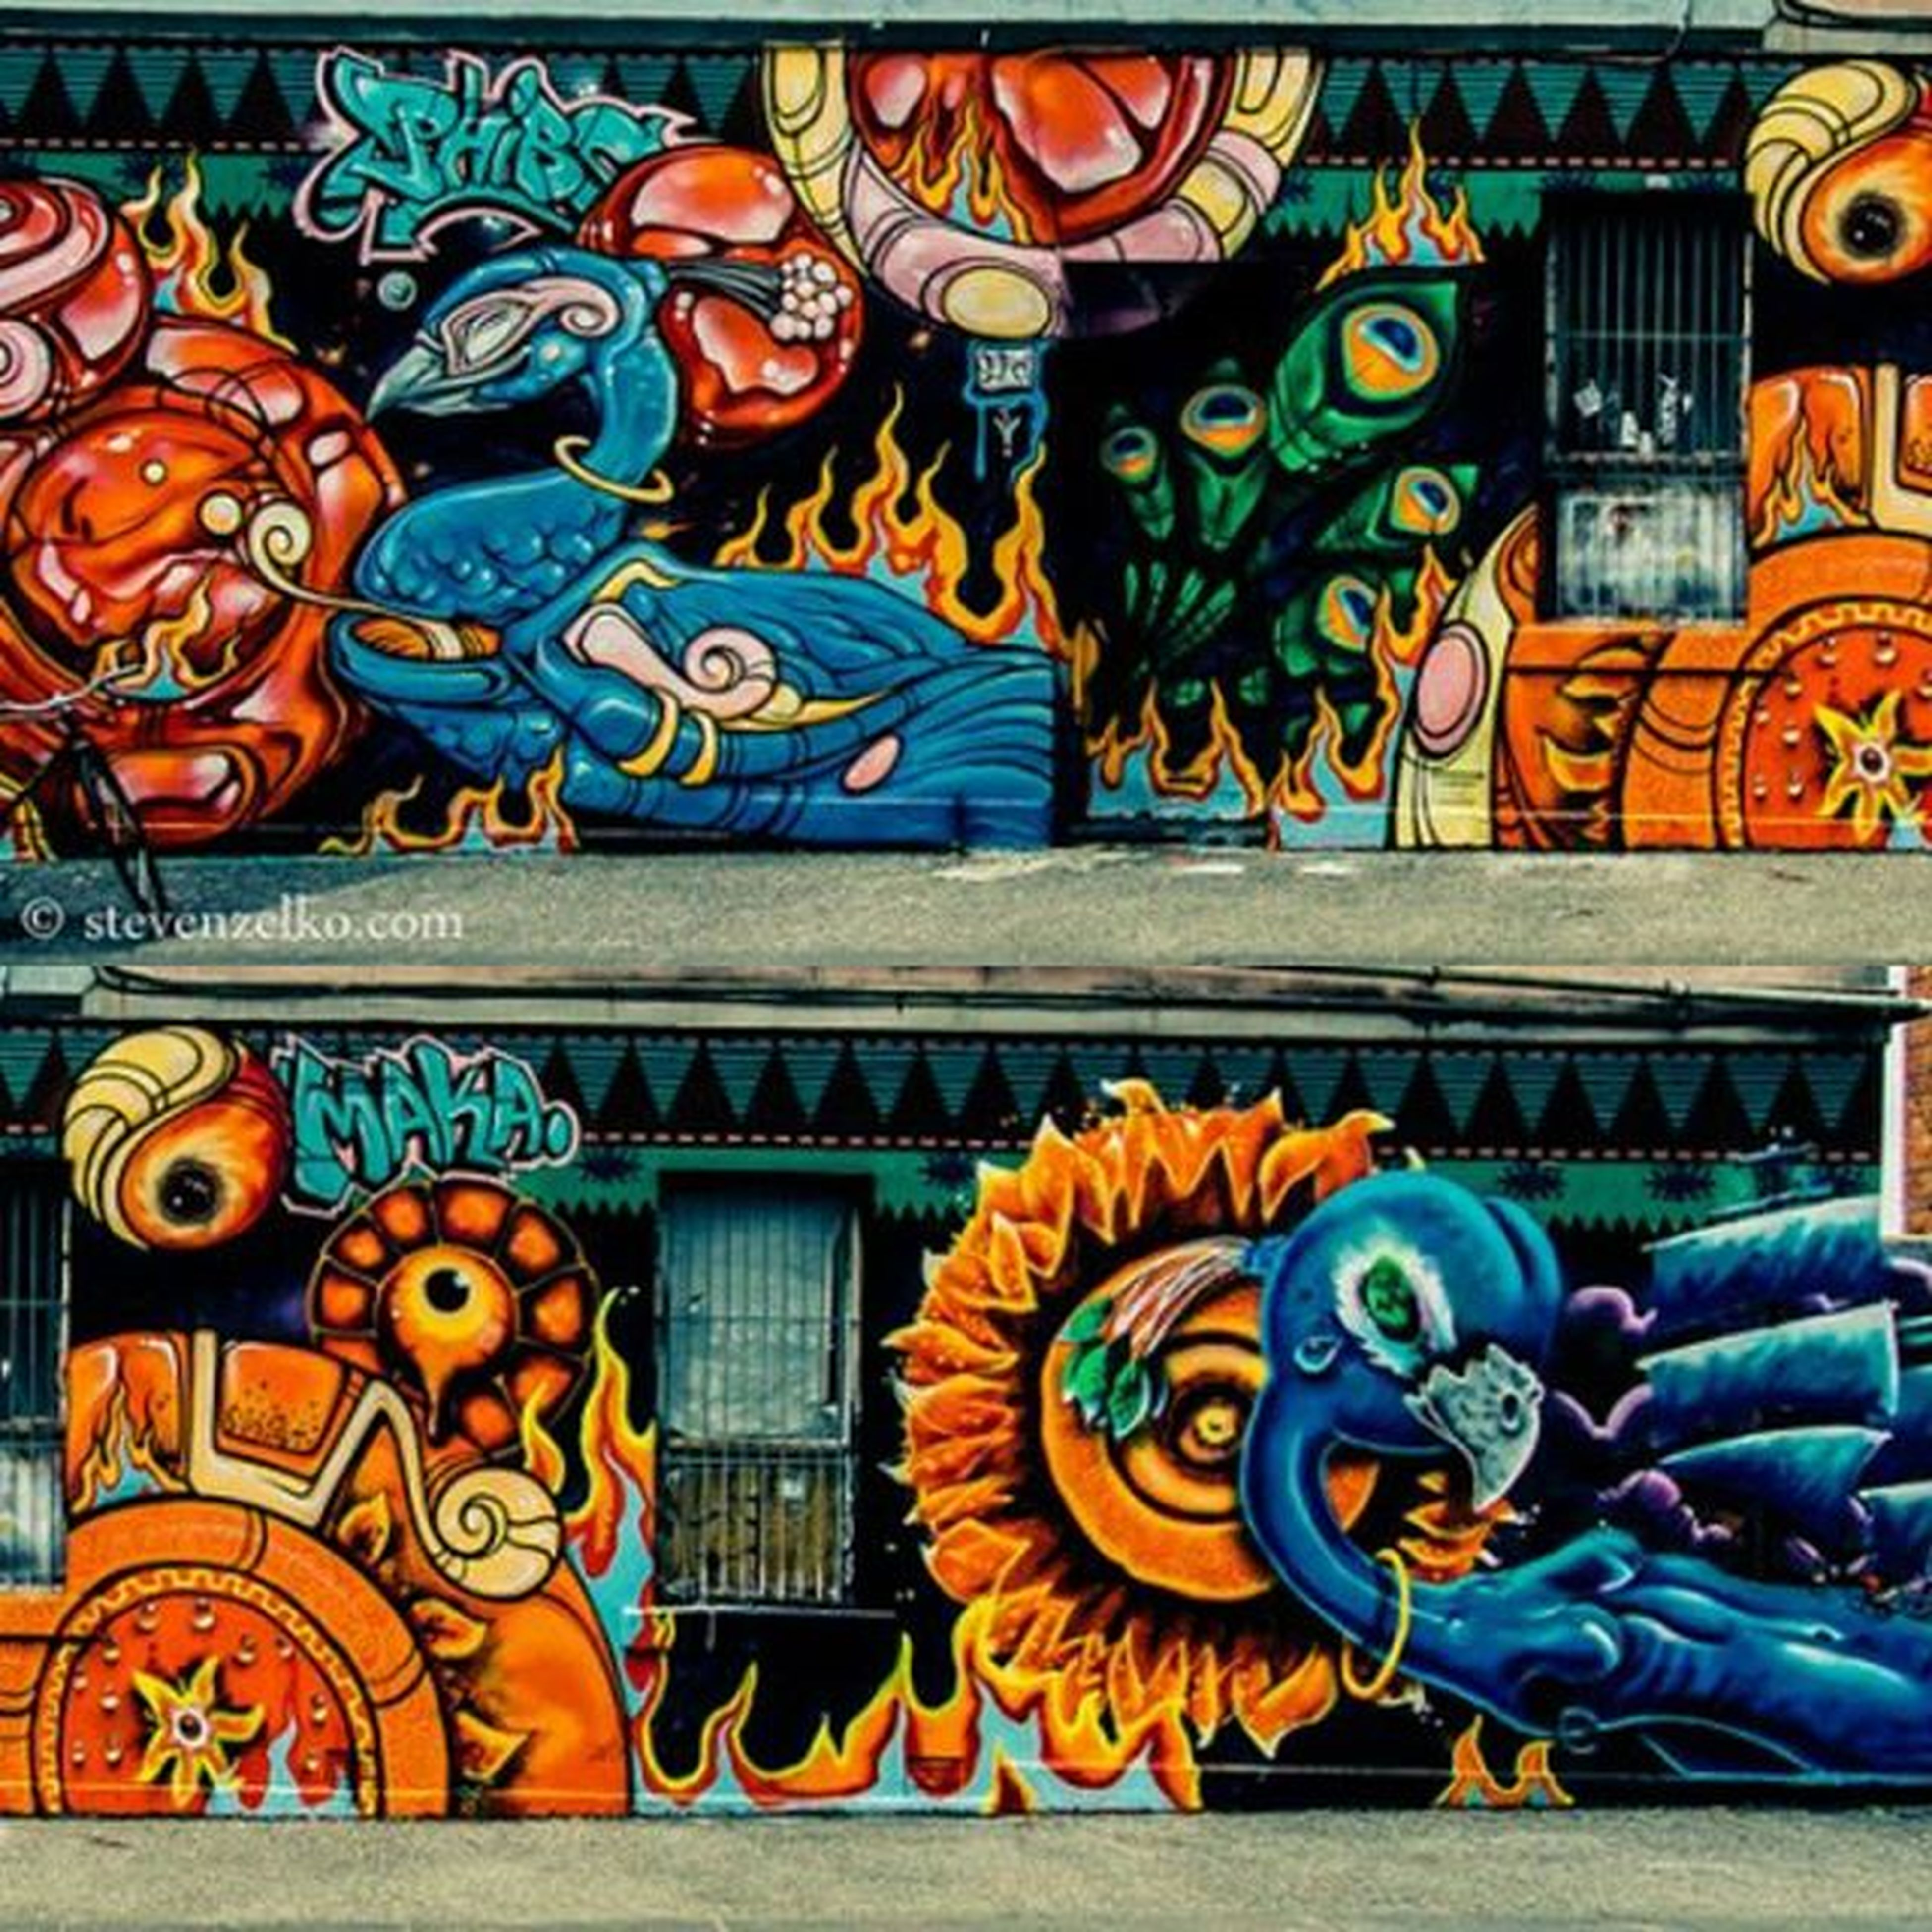 art, art and craft, creativity, multi colored, graffiti, human representation, animal representation, architecture, built structure, design, sculpture, mural, wall - building feature, statue, carving - craft product, craft, ornate, pattern, street art